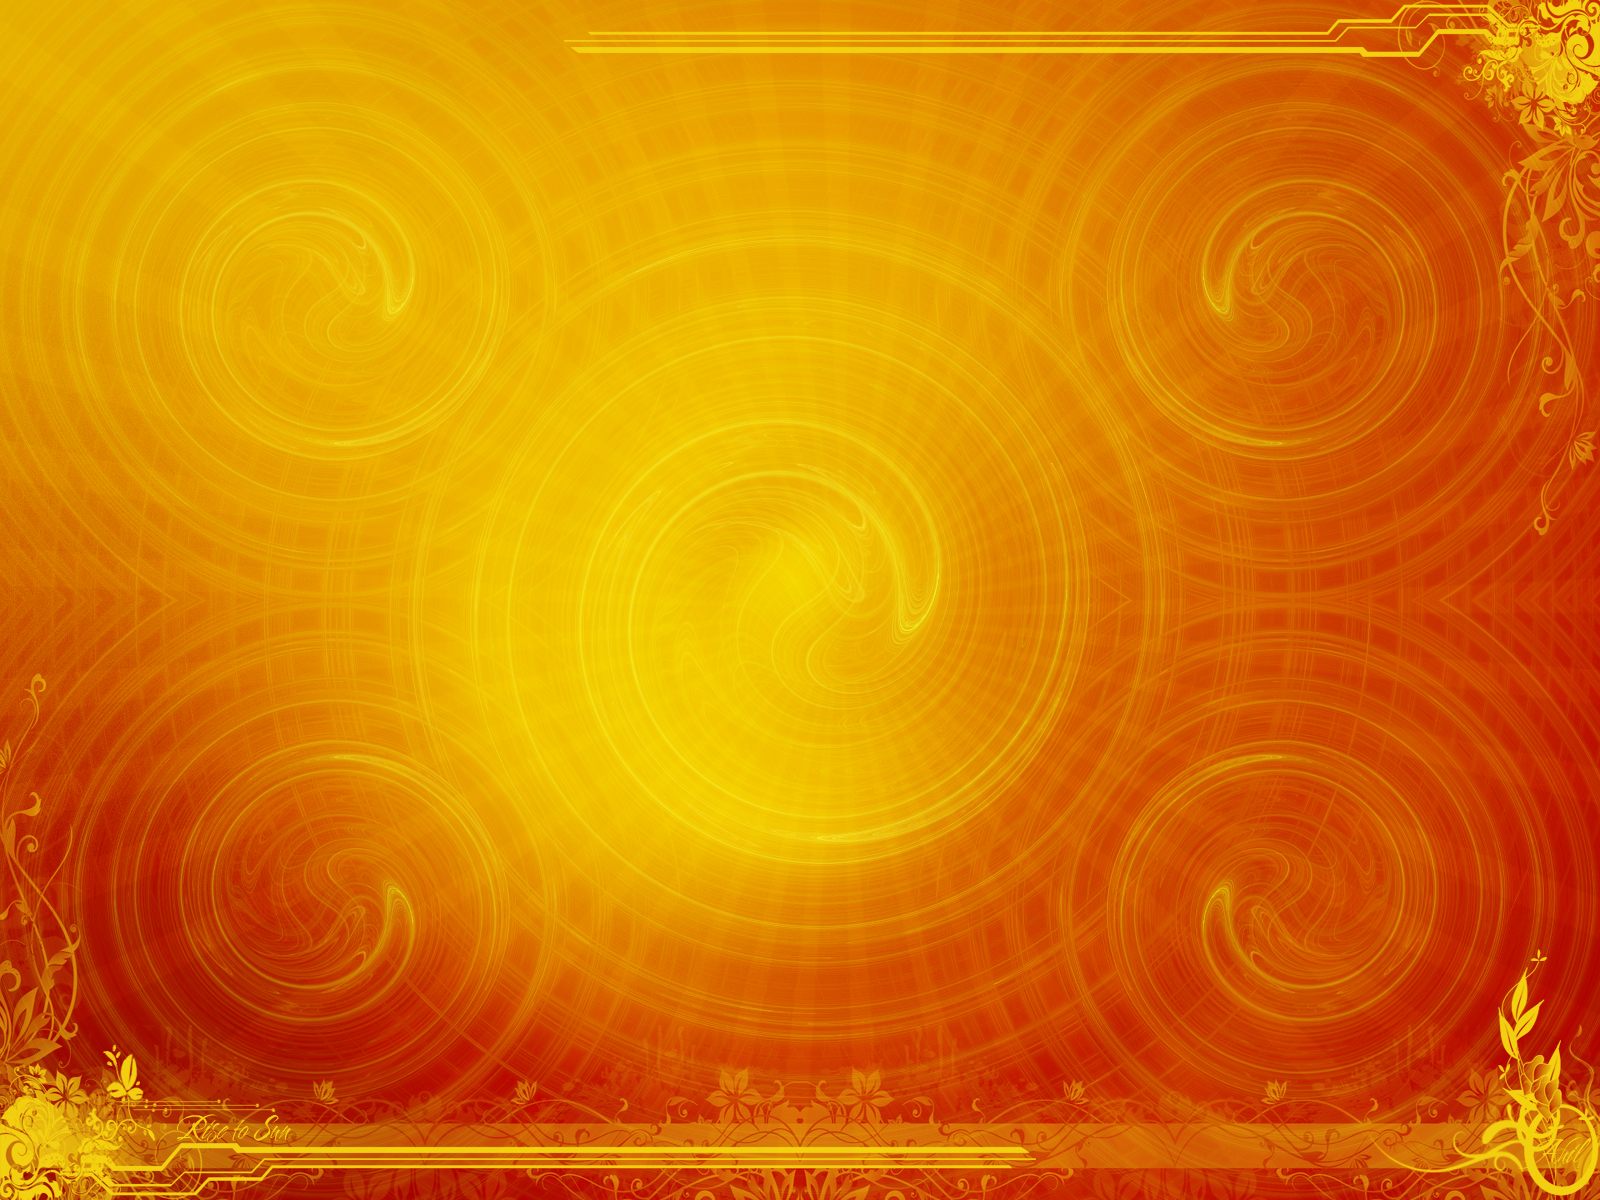 Wallpaper Orange Color 61 Images: Yellow Wallpaper And Background Image